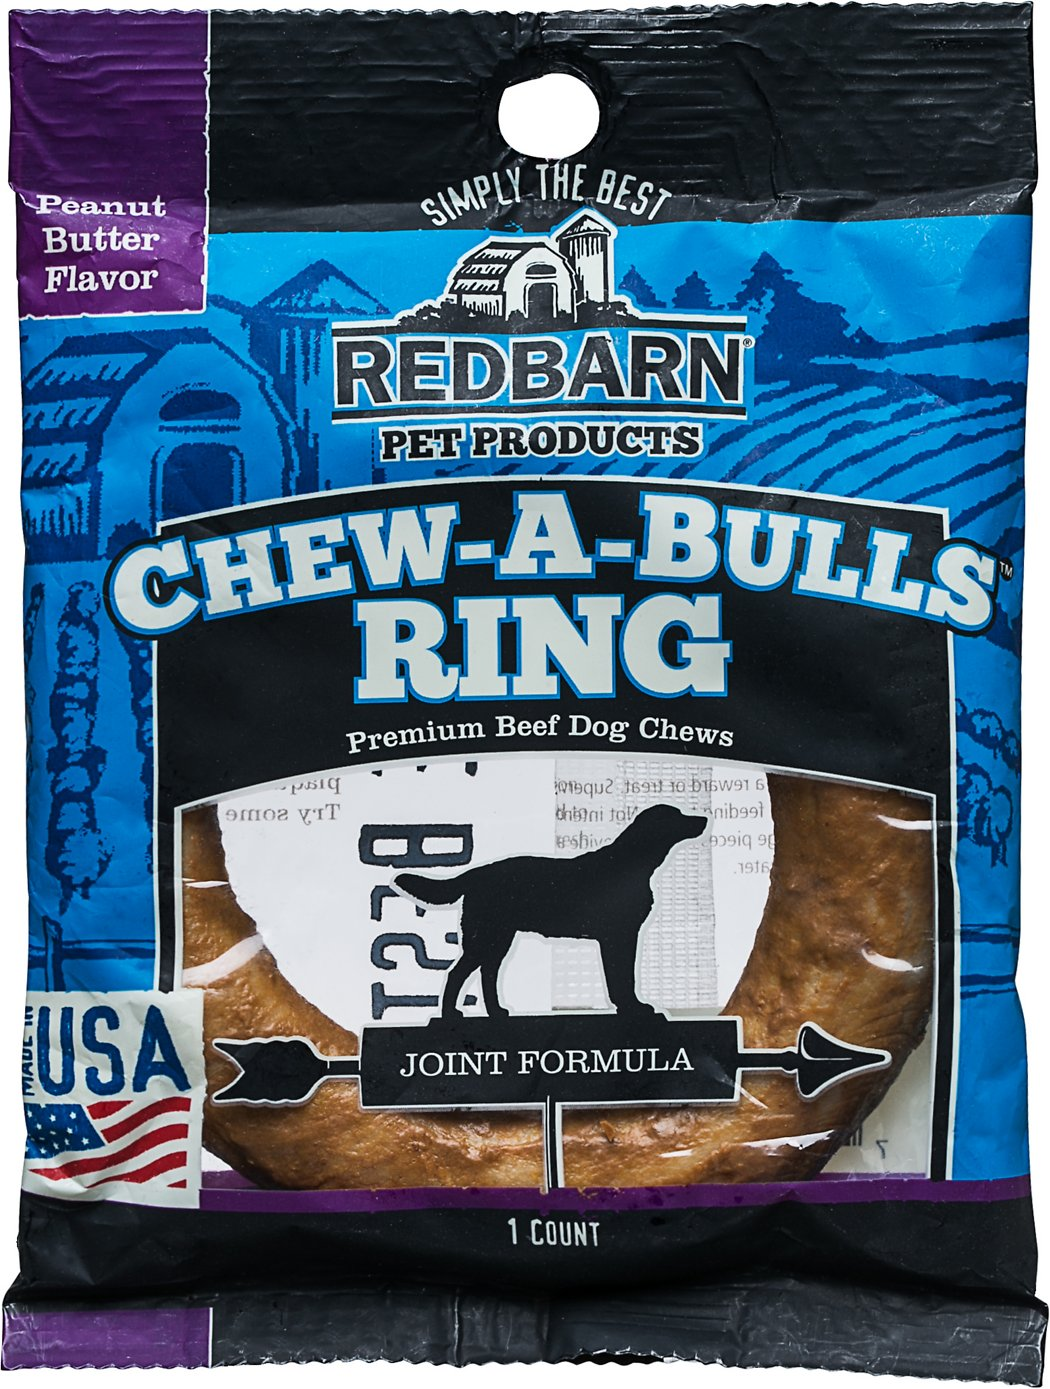 Redbarn Peanut Butter Flavor Joint Formula Chew-A-Bulls Ring Dog Treat, 1-count